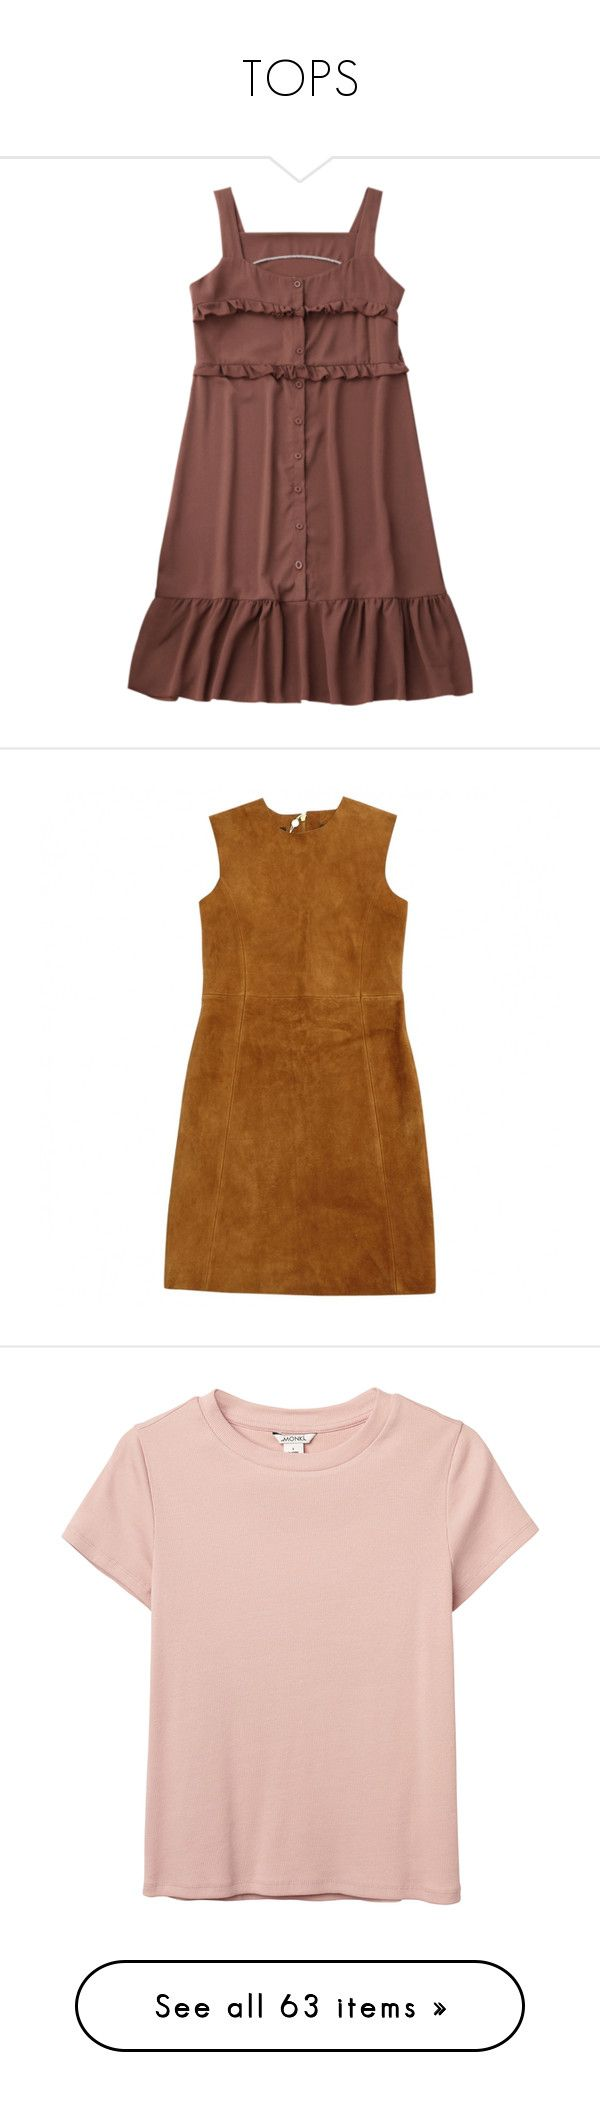 """""""TOPS"""" by sxmething-like-fate ❤ liked on Polyvore featuring dresses, brown, women clothing dresses, brown dress, pre owned dresses, preowned dresses, tops, t-shirts, shirts and blusas"""